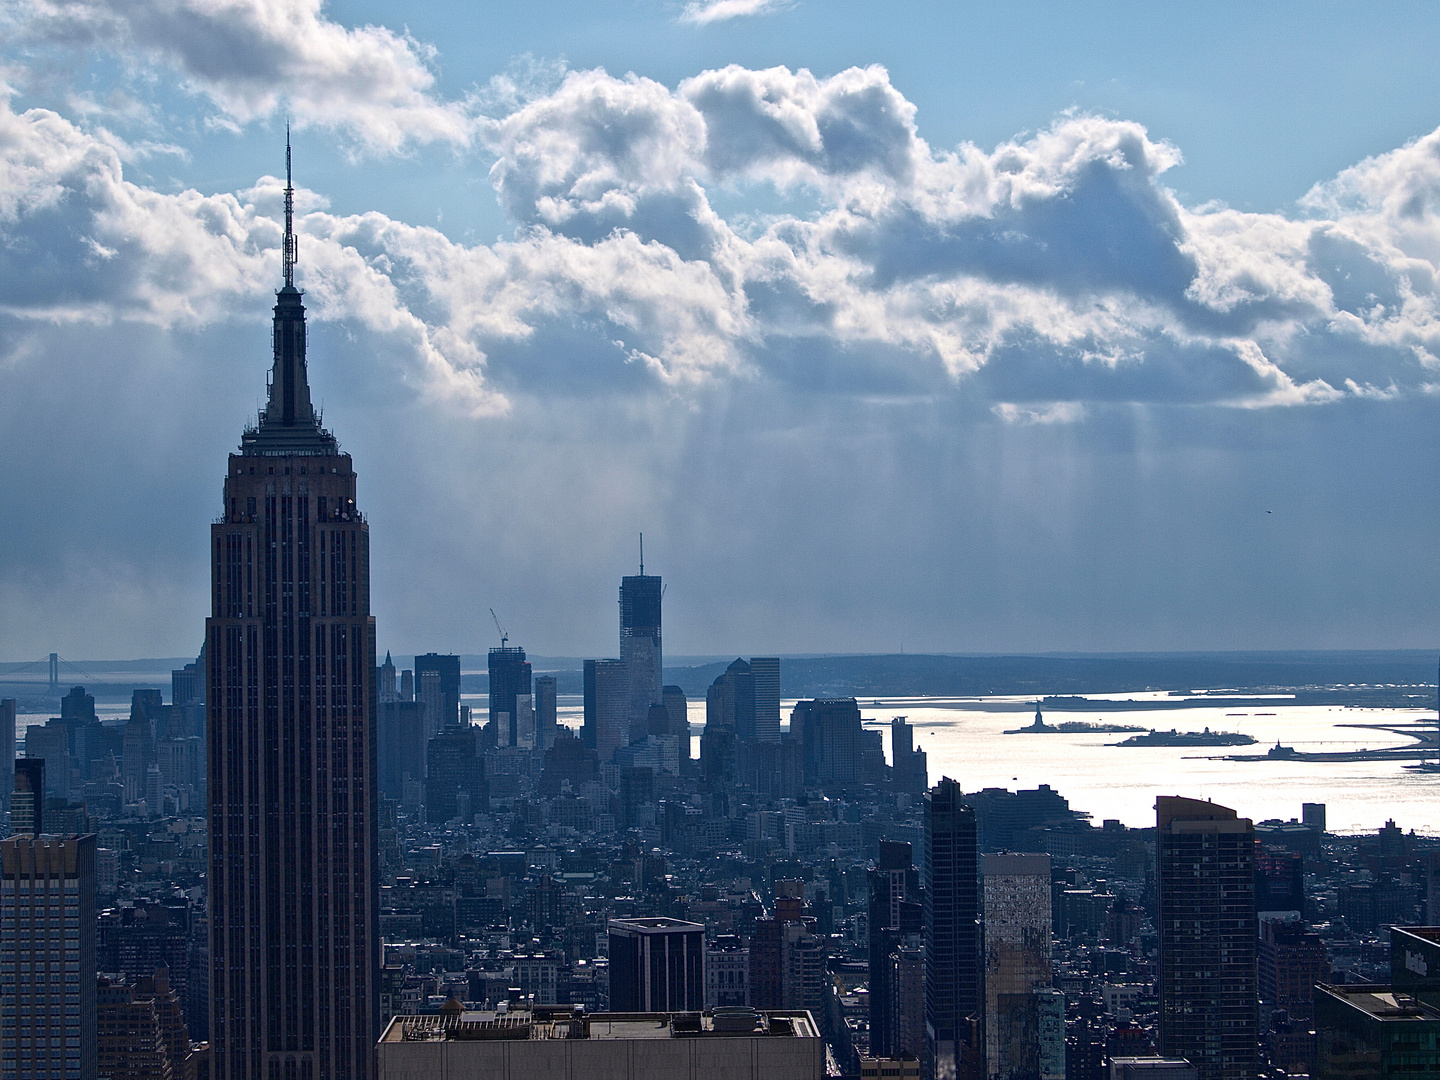 NewYork from the Top